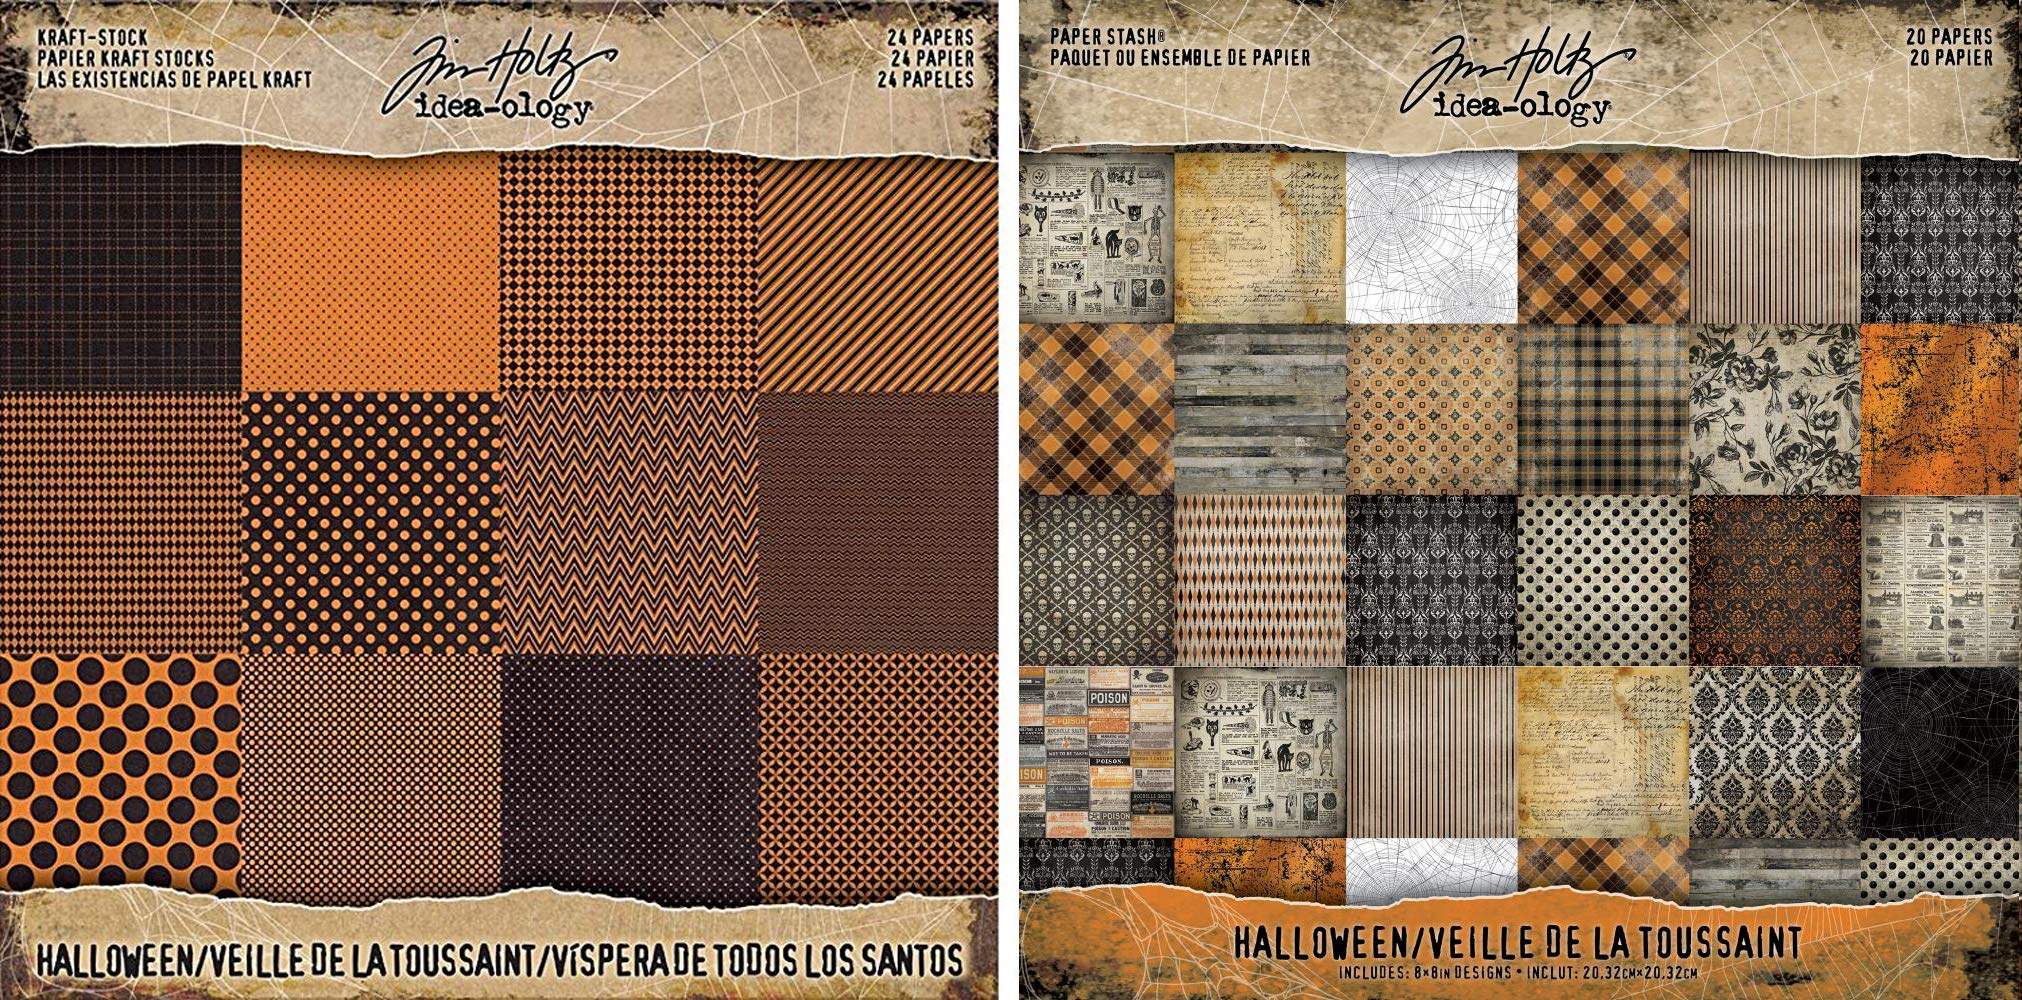 Tim Holtz Idea-ology 2017 Halloween Kraft Cardstock Pad and 2018 Halloween Paper Stash Pad - Two Items